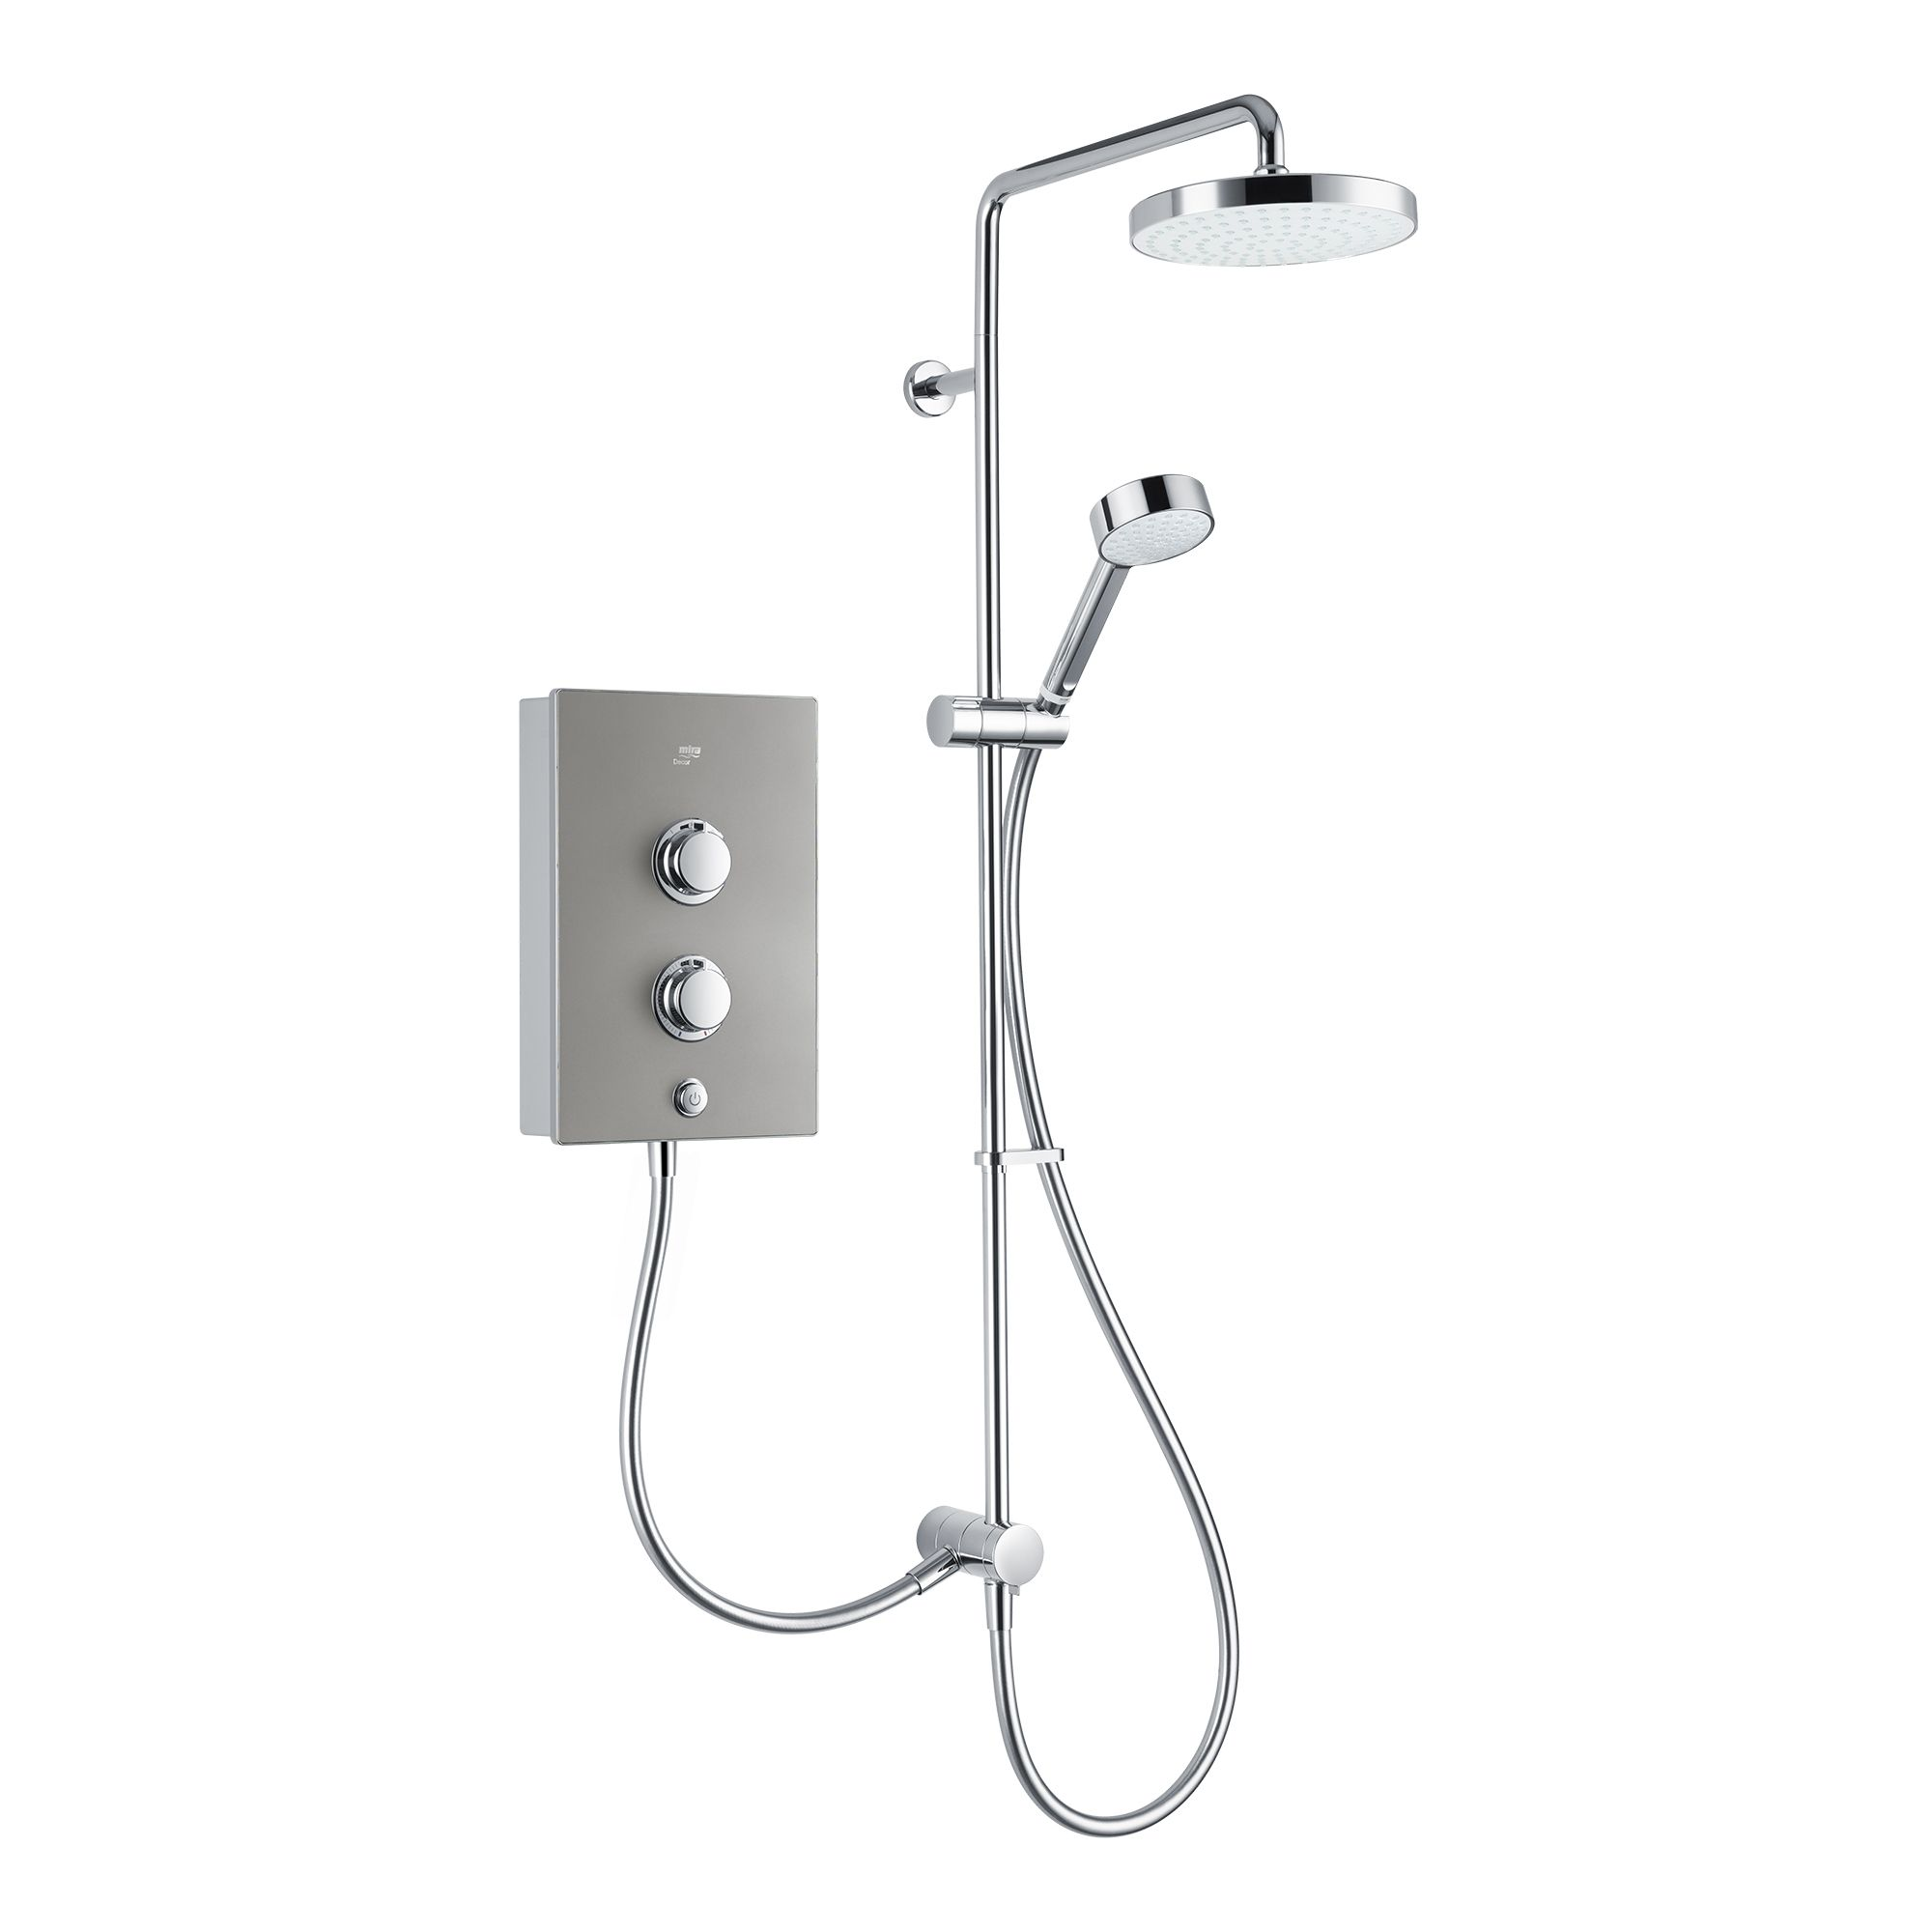 Mira Decor Dual Silver Effect Electric Shower 10 8 Kw Departments Diy At B Q